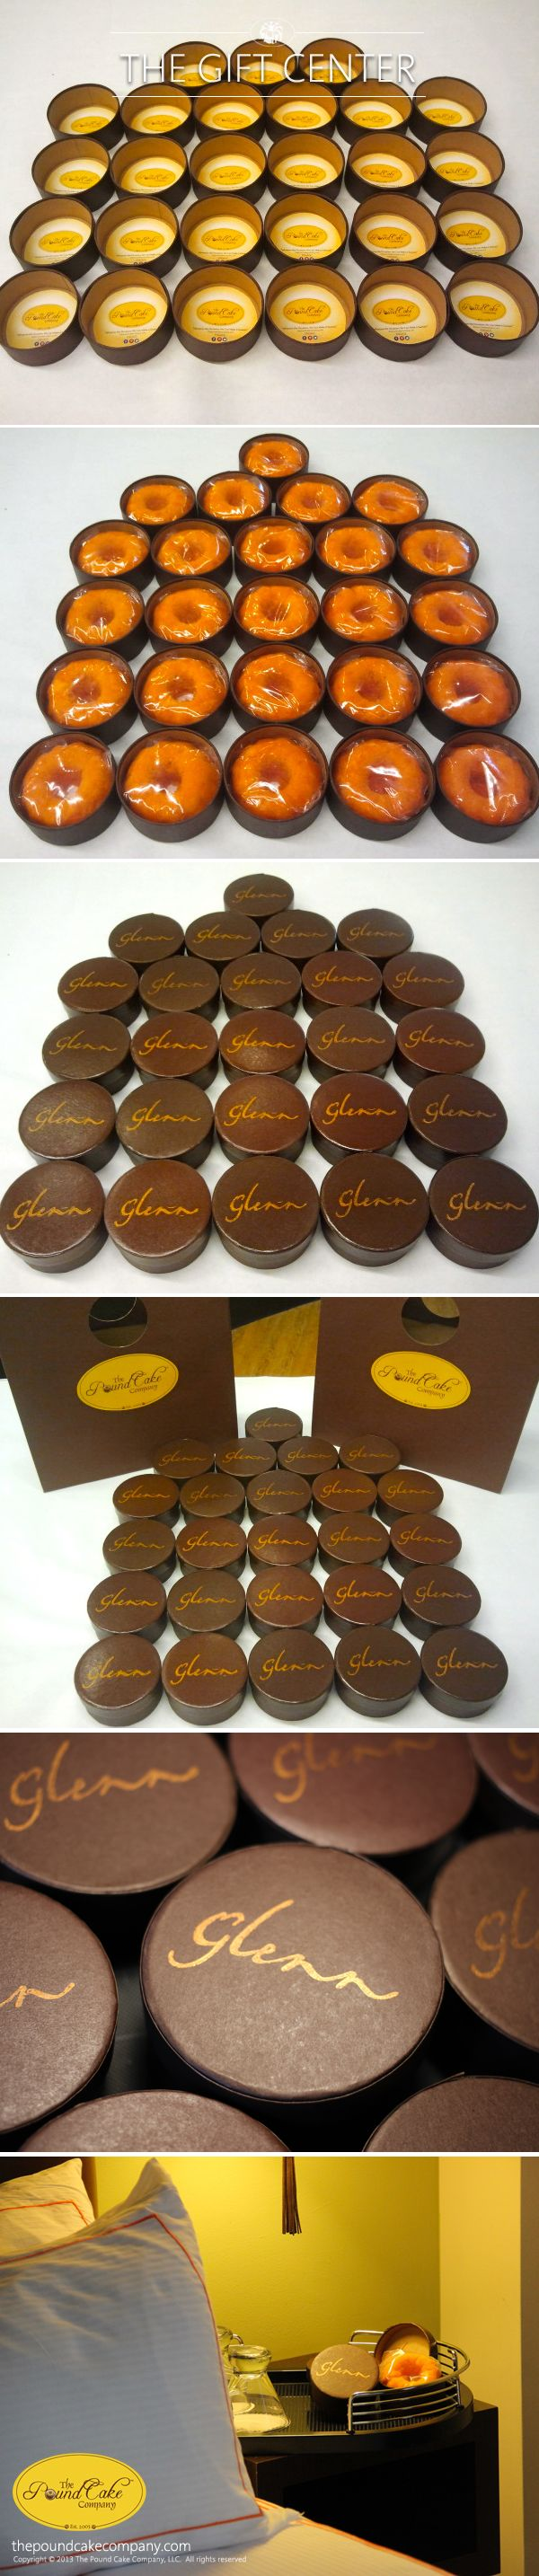 The Glenn Hotel downtown Atlanta GA selects The Pound Cake Company's custom Phavors as the hotel's exclusive amenity. Featuring their signature colors - chocolate brown and burnt orange, we created a custom package with hand stamped logo and our orange rum pound cake.